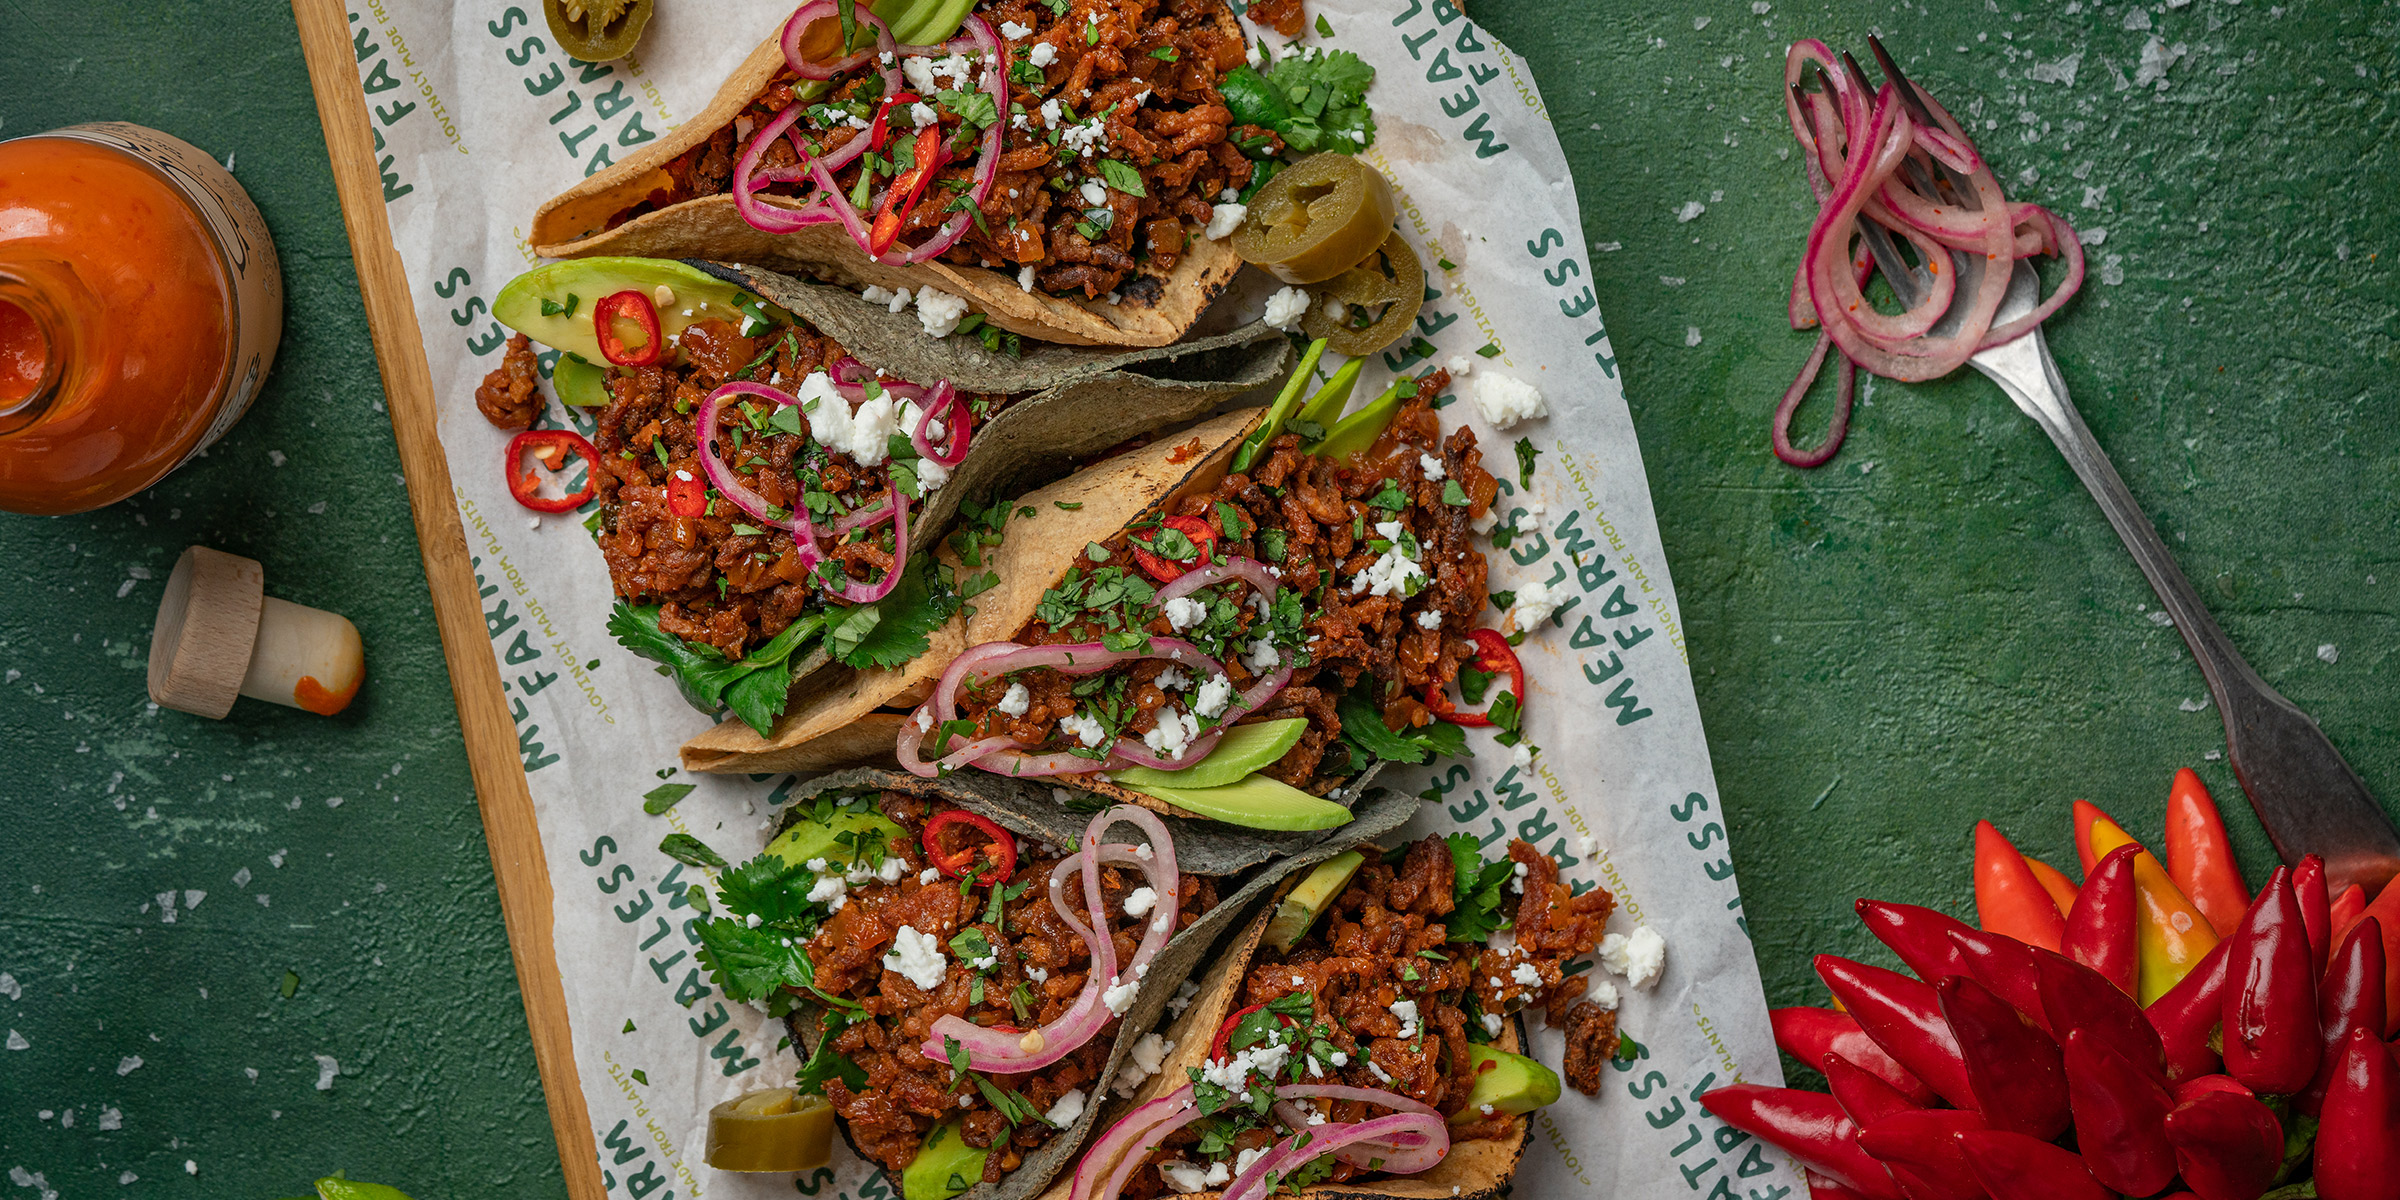 Meatless Tacos with plant-based mince